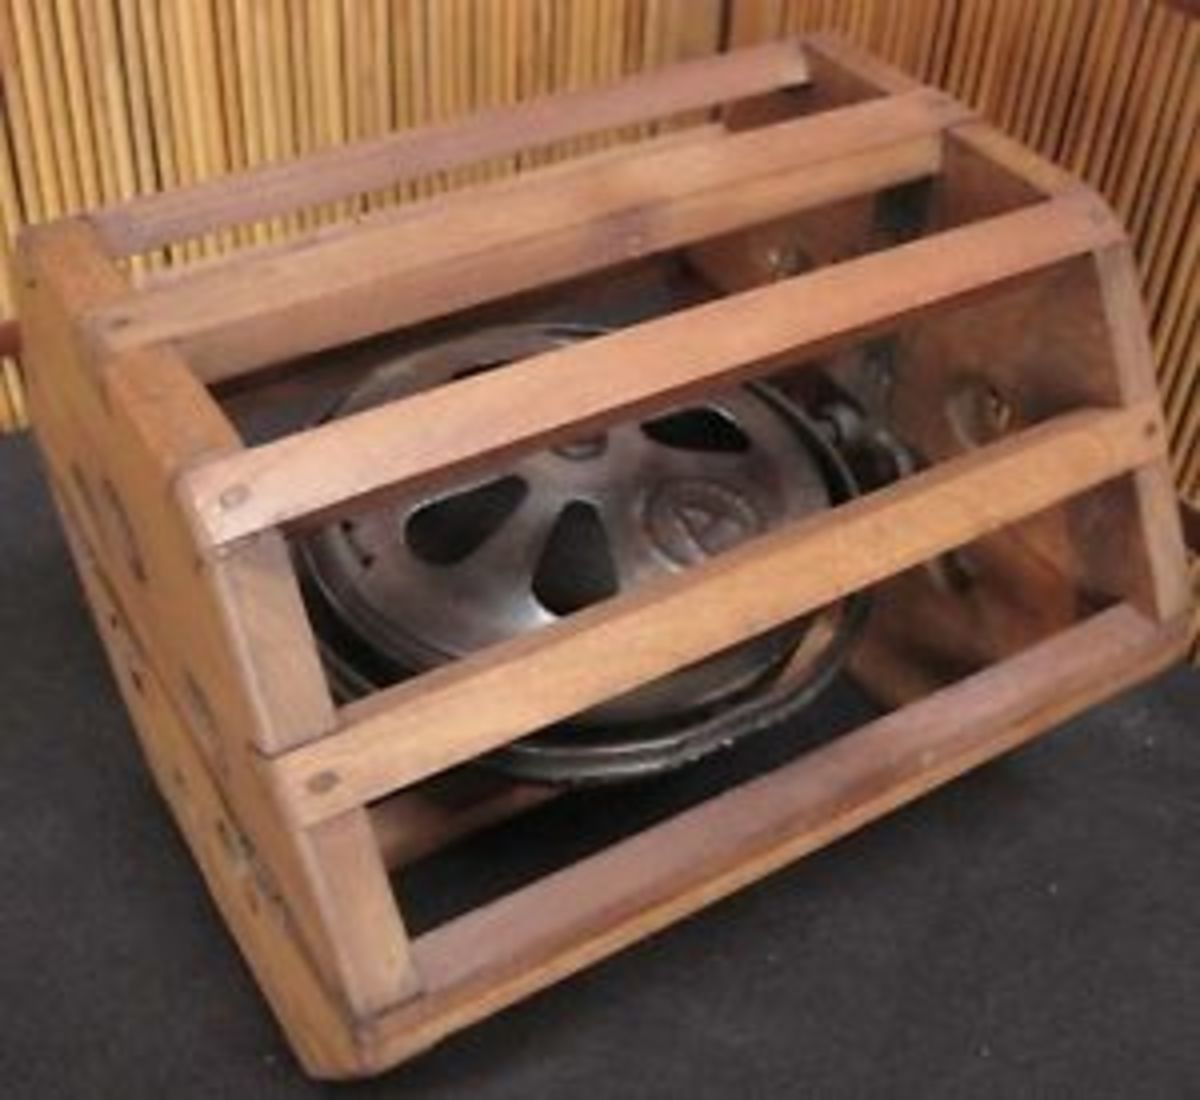 Kotatsu charcoal burner with protective wooden cage